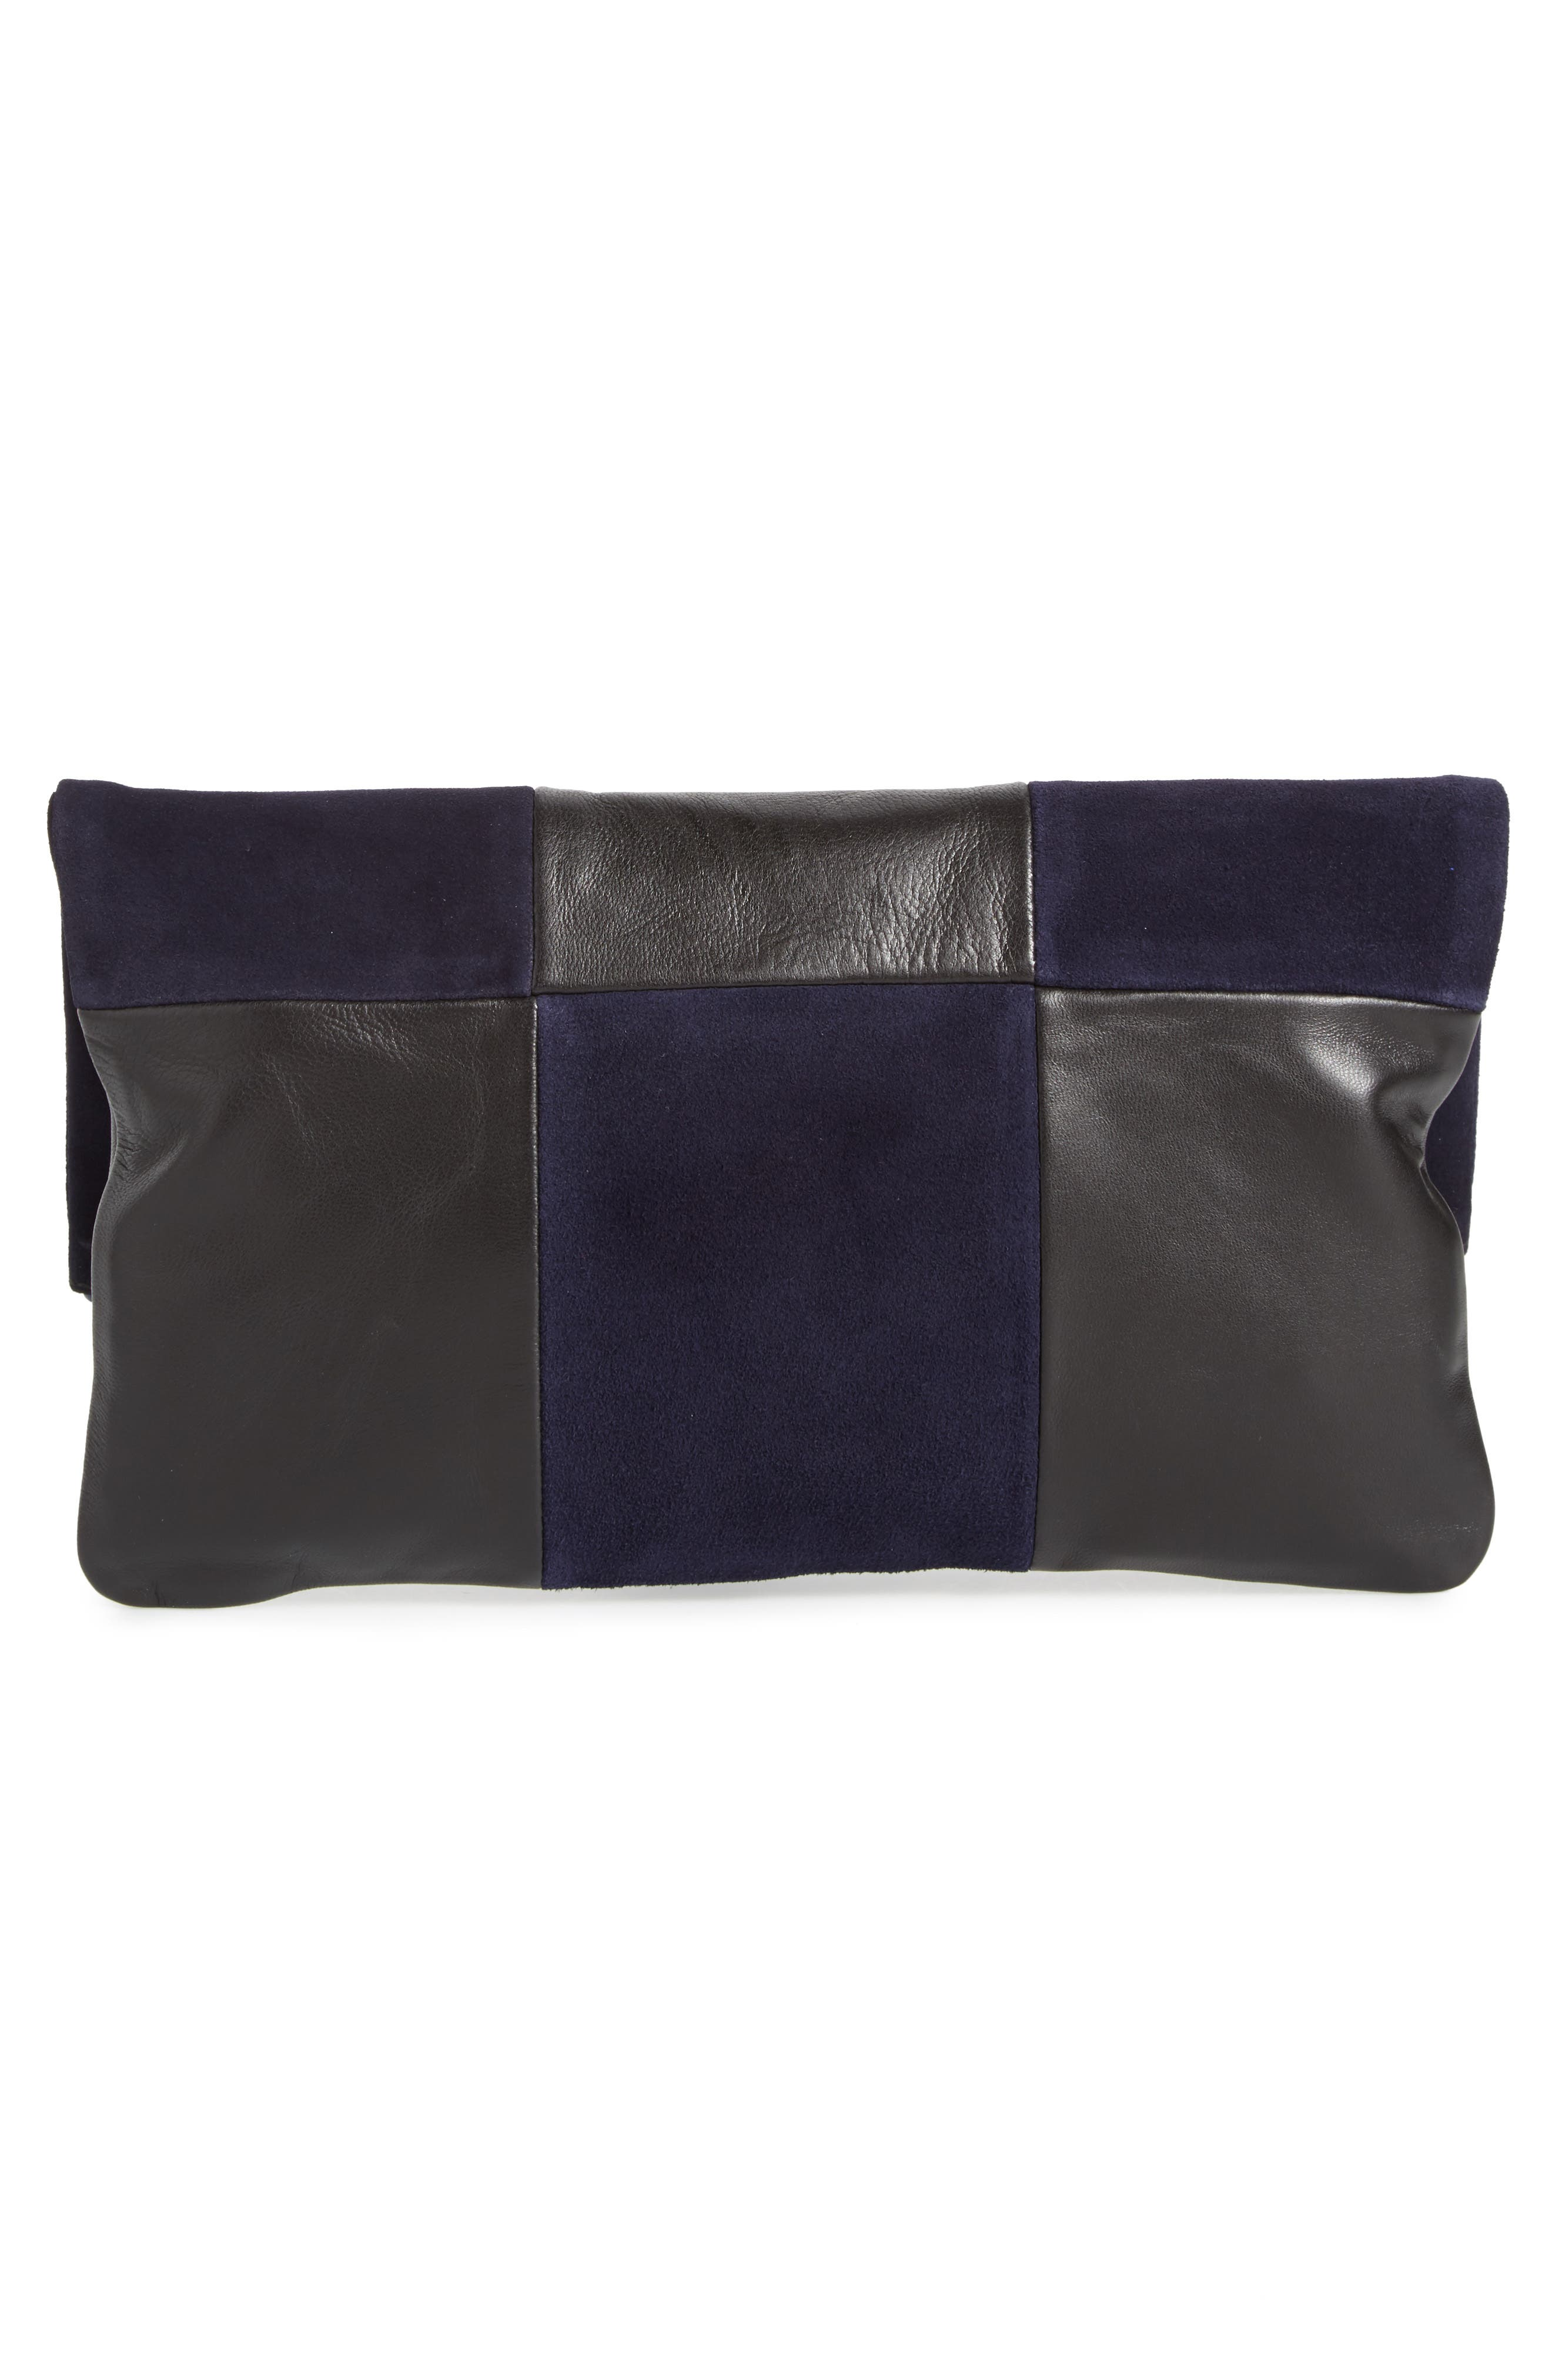 Leather & Suede Foldover Clutch,                             Alternate thumbnail 3, color,                             Black Nappa/ Navy Suede